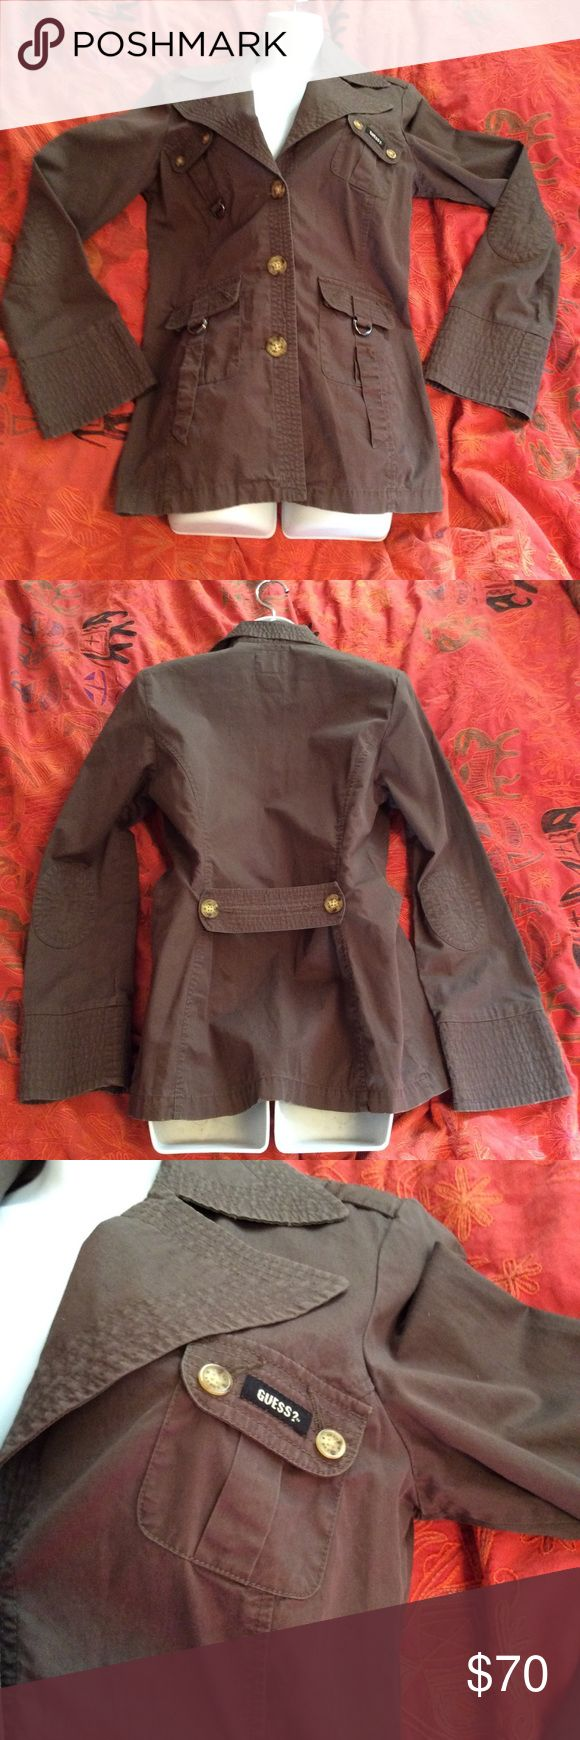 Field jacket military jacket guess jeans olive Guess size medium field military jacket olive green. I don't think I ever wore it still feels crispy. Hot for spring 2017 pockets buttons elbow patches. Short trench coat Guess Jackets & Coats